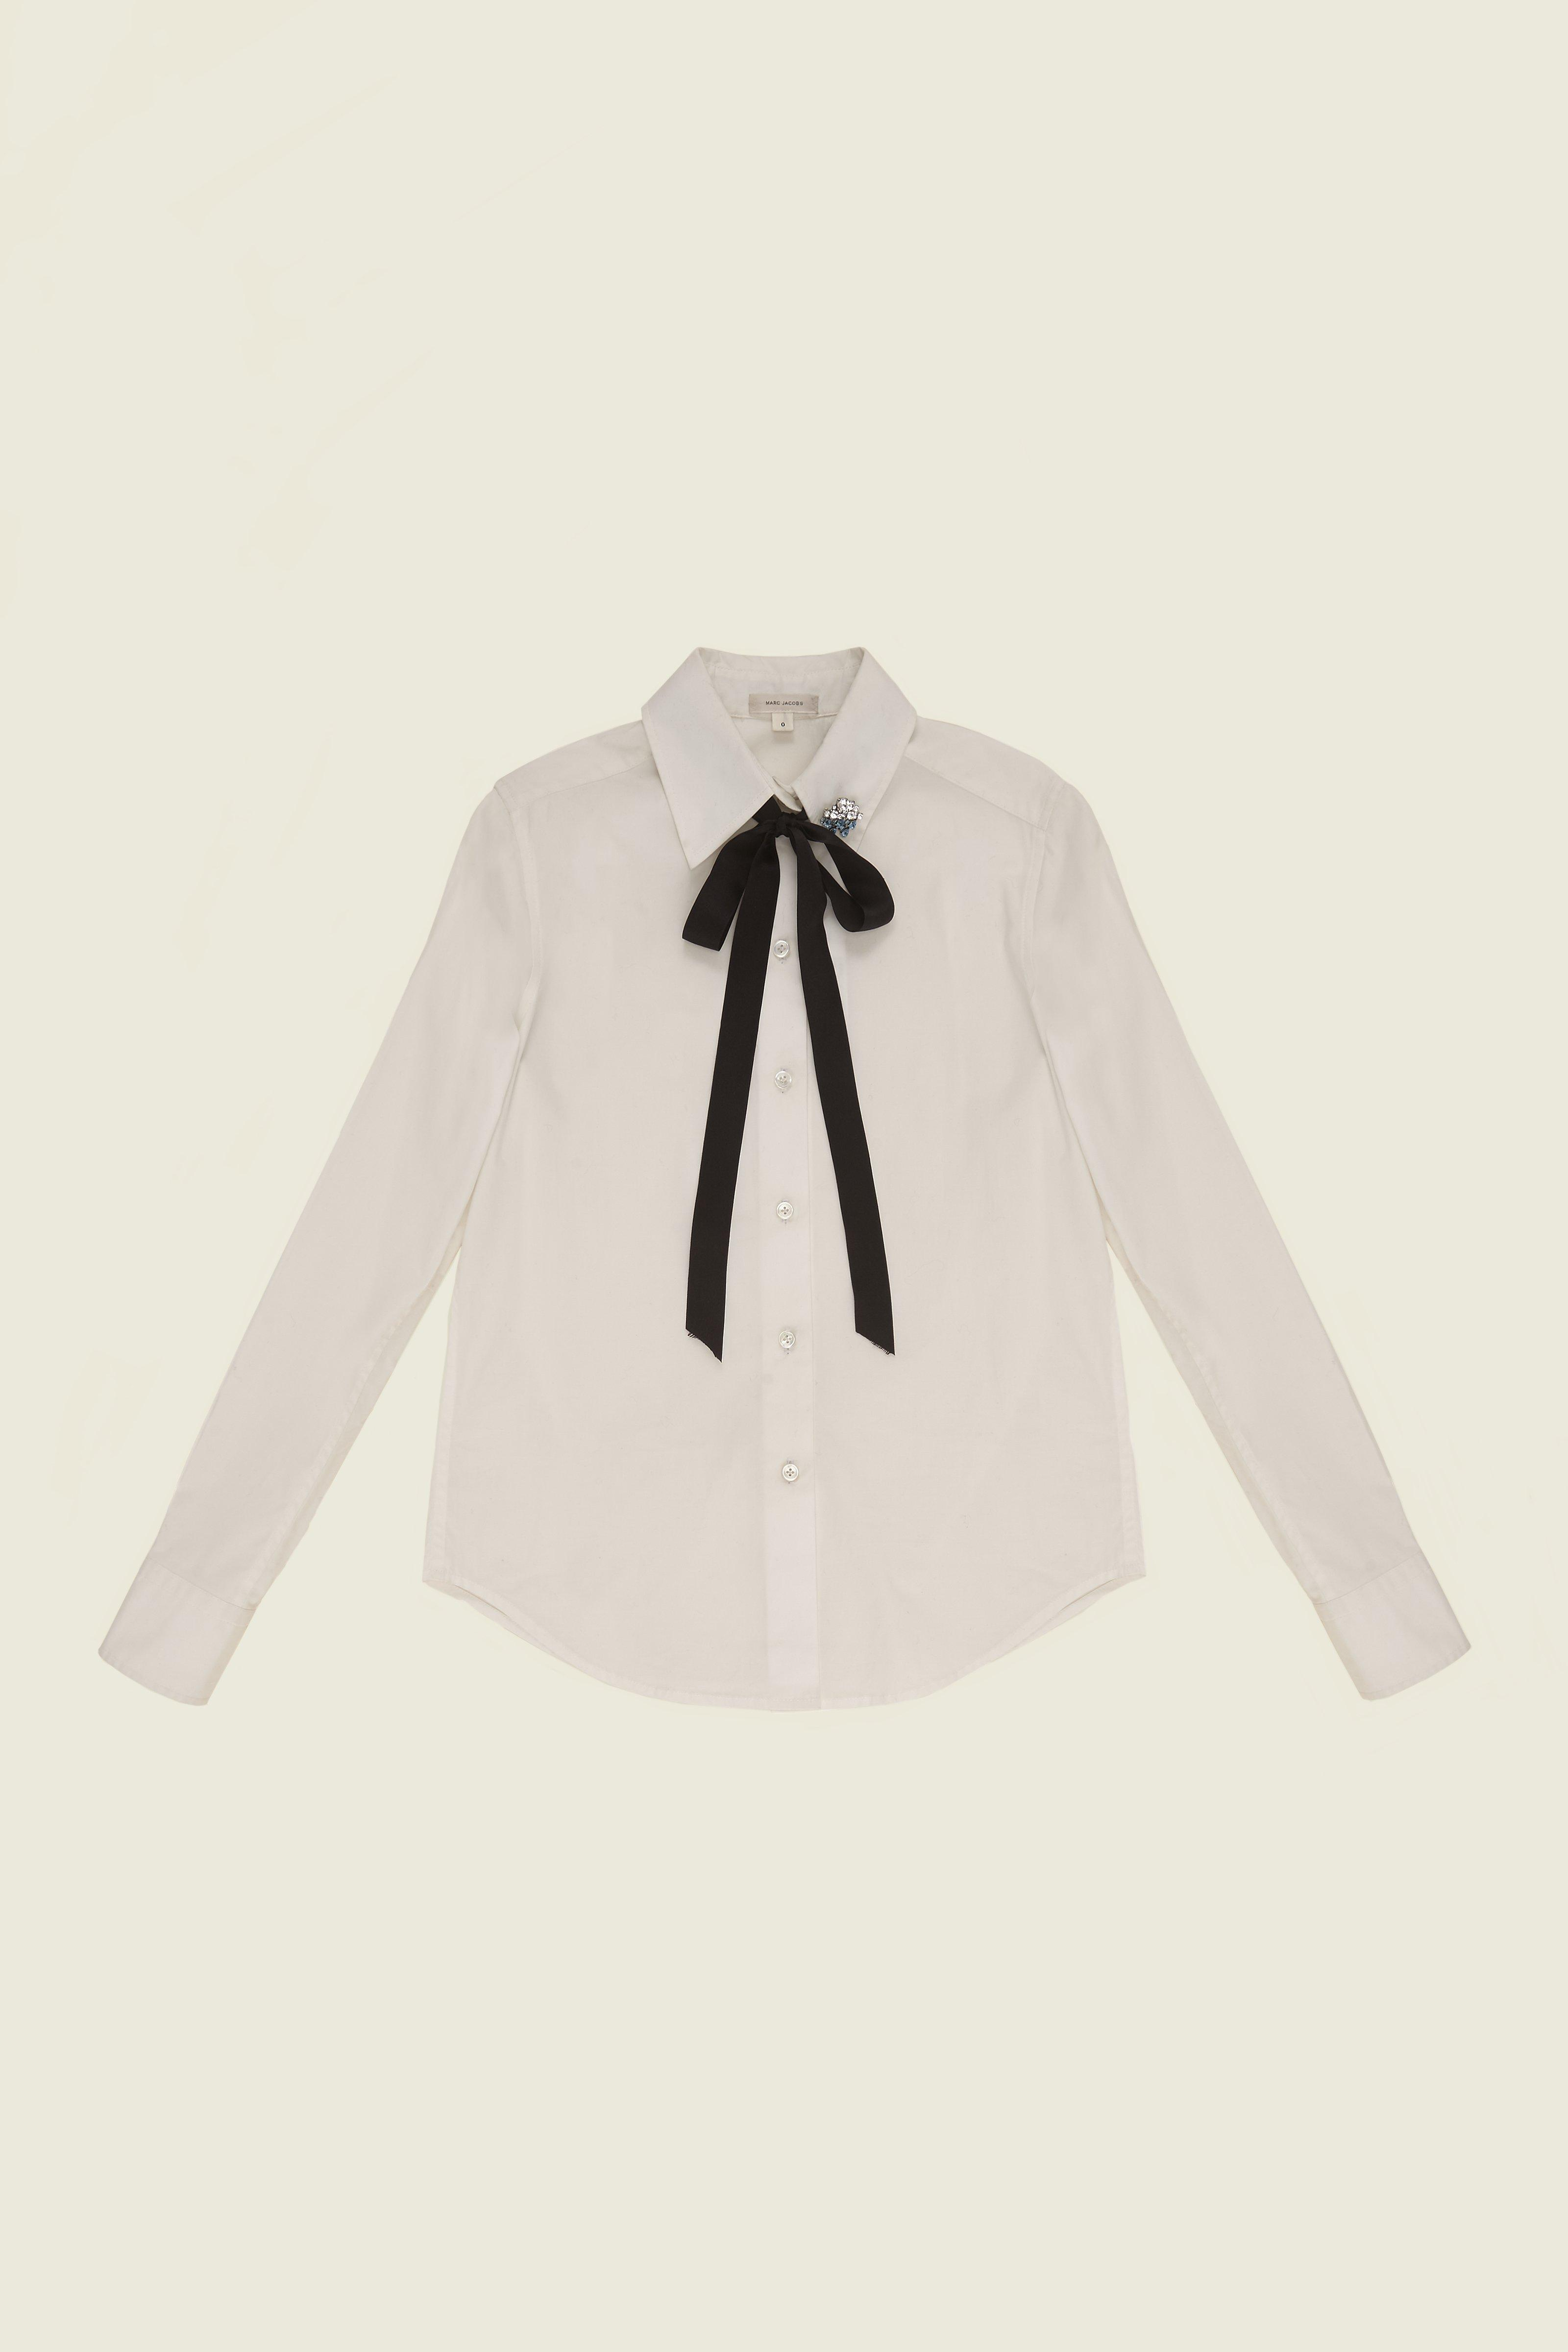 MARC JACOBS Cotton Shirt With Bow And Collar Detail